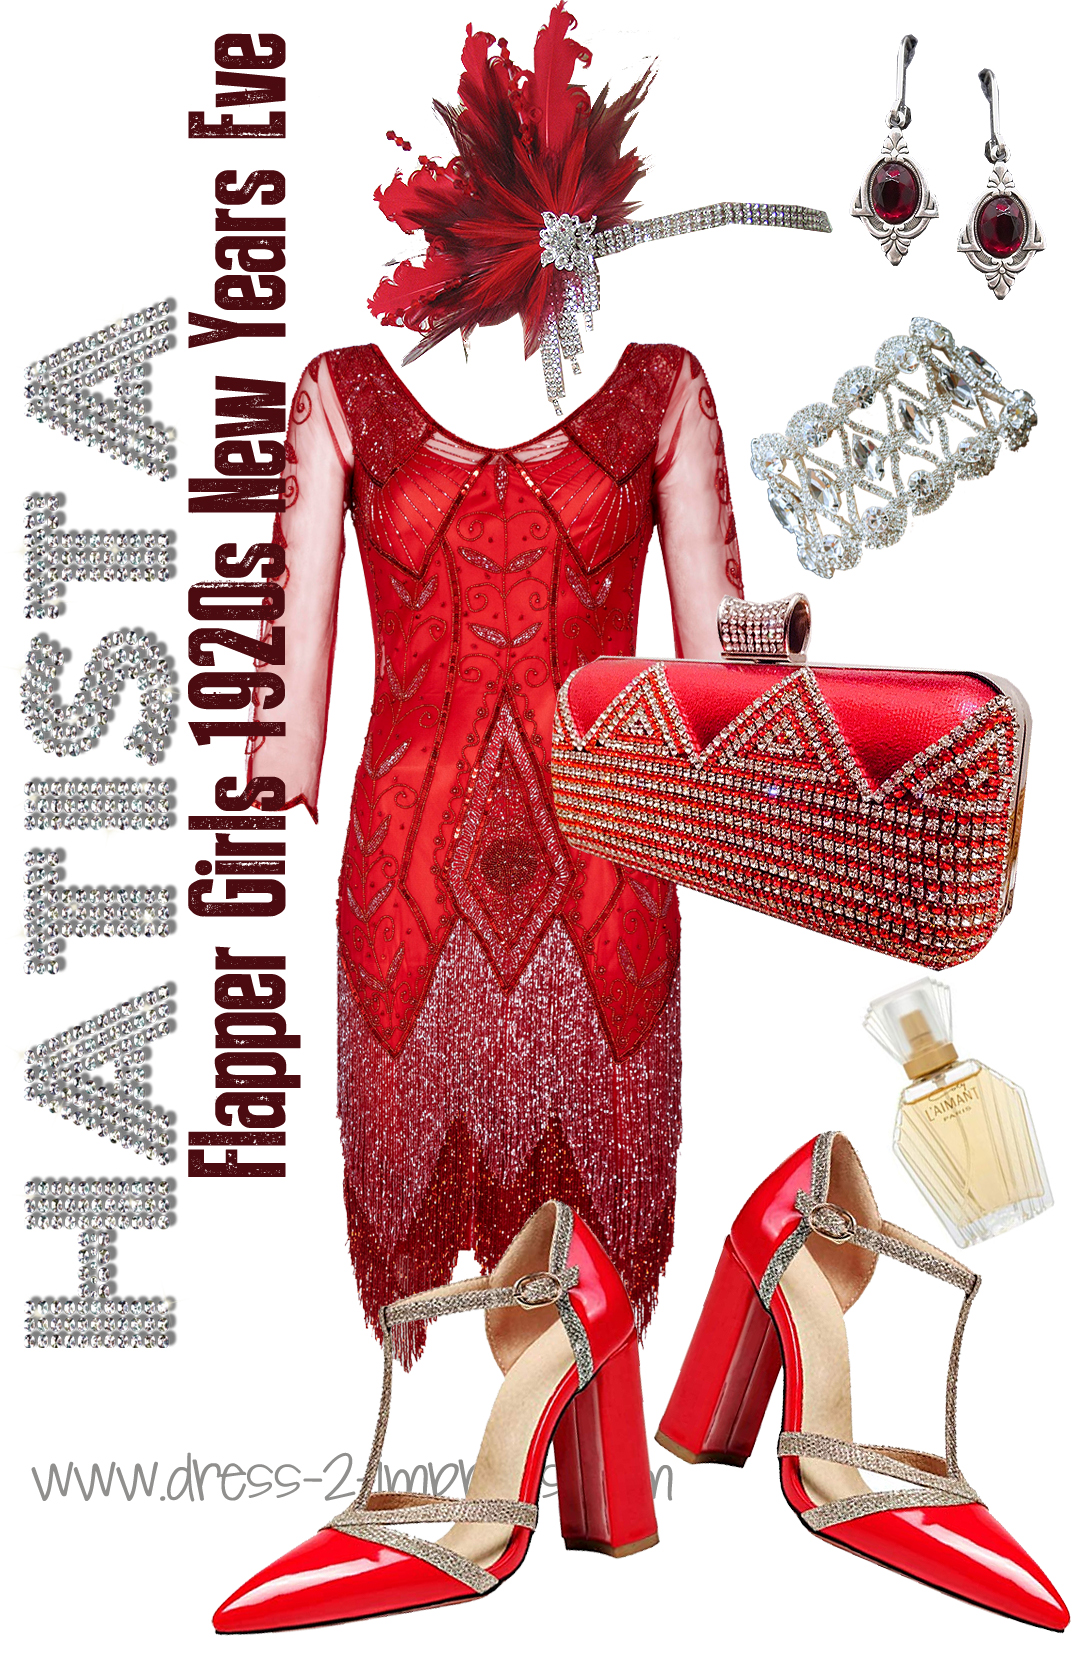 1920s fashion flappergirls outfits red outfit inspiration what to wear to a gatsby